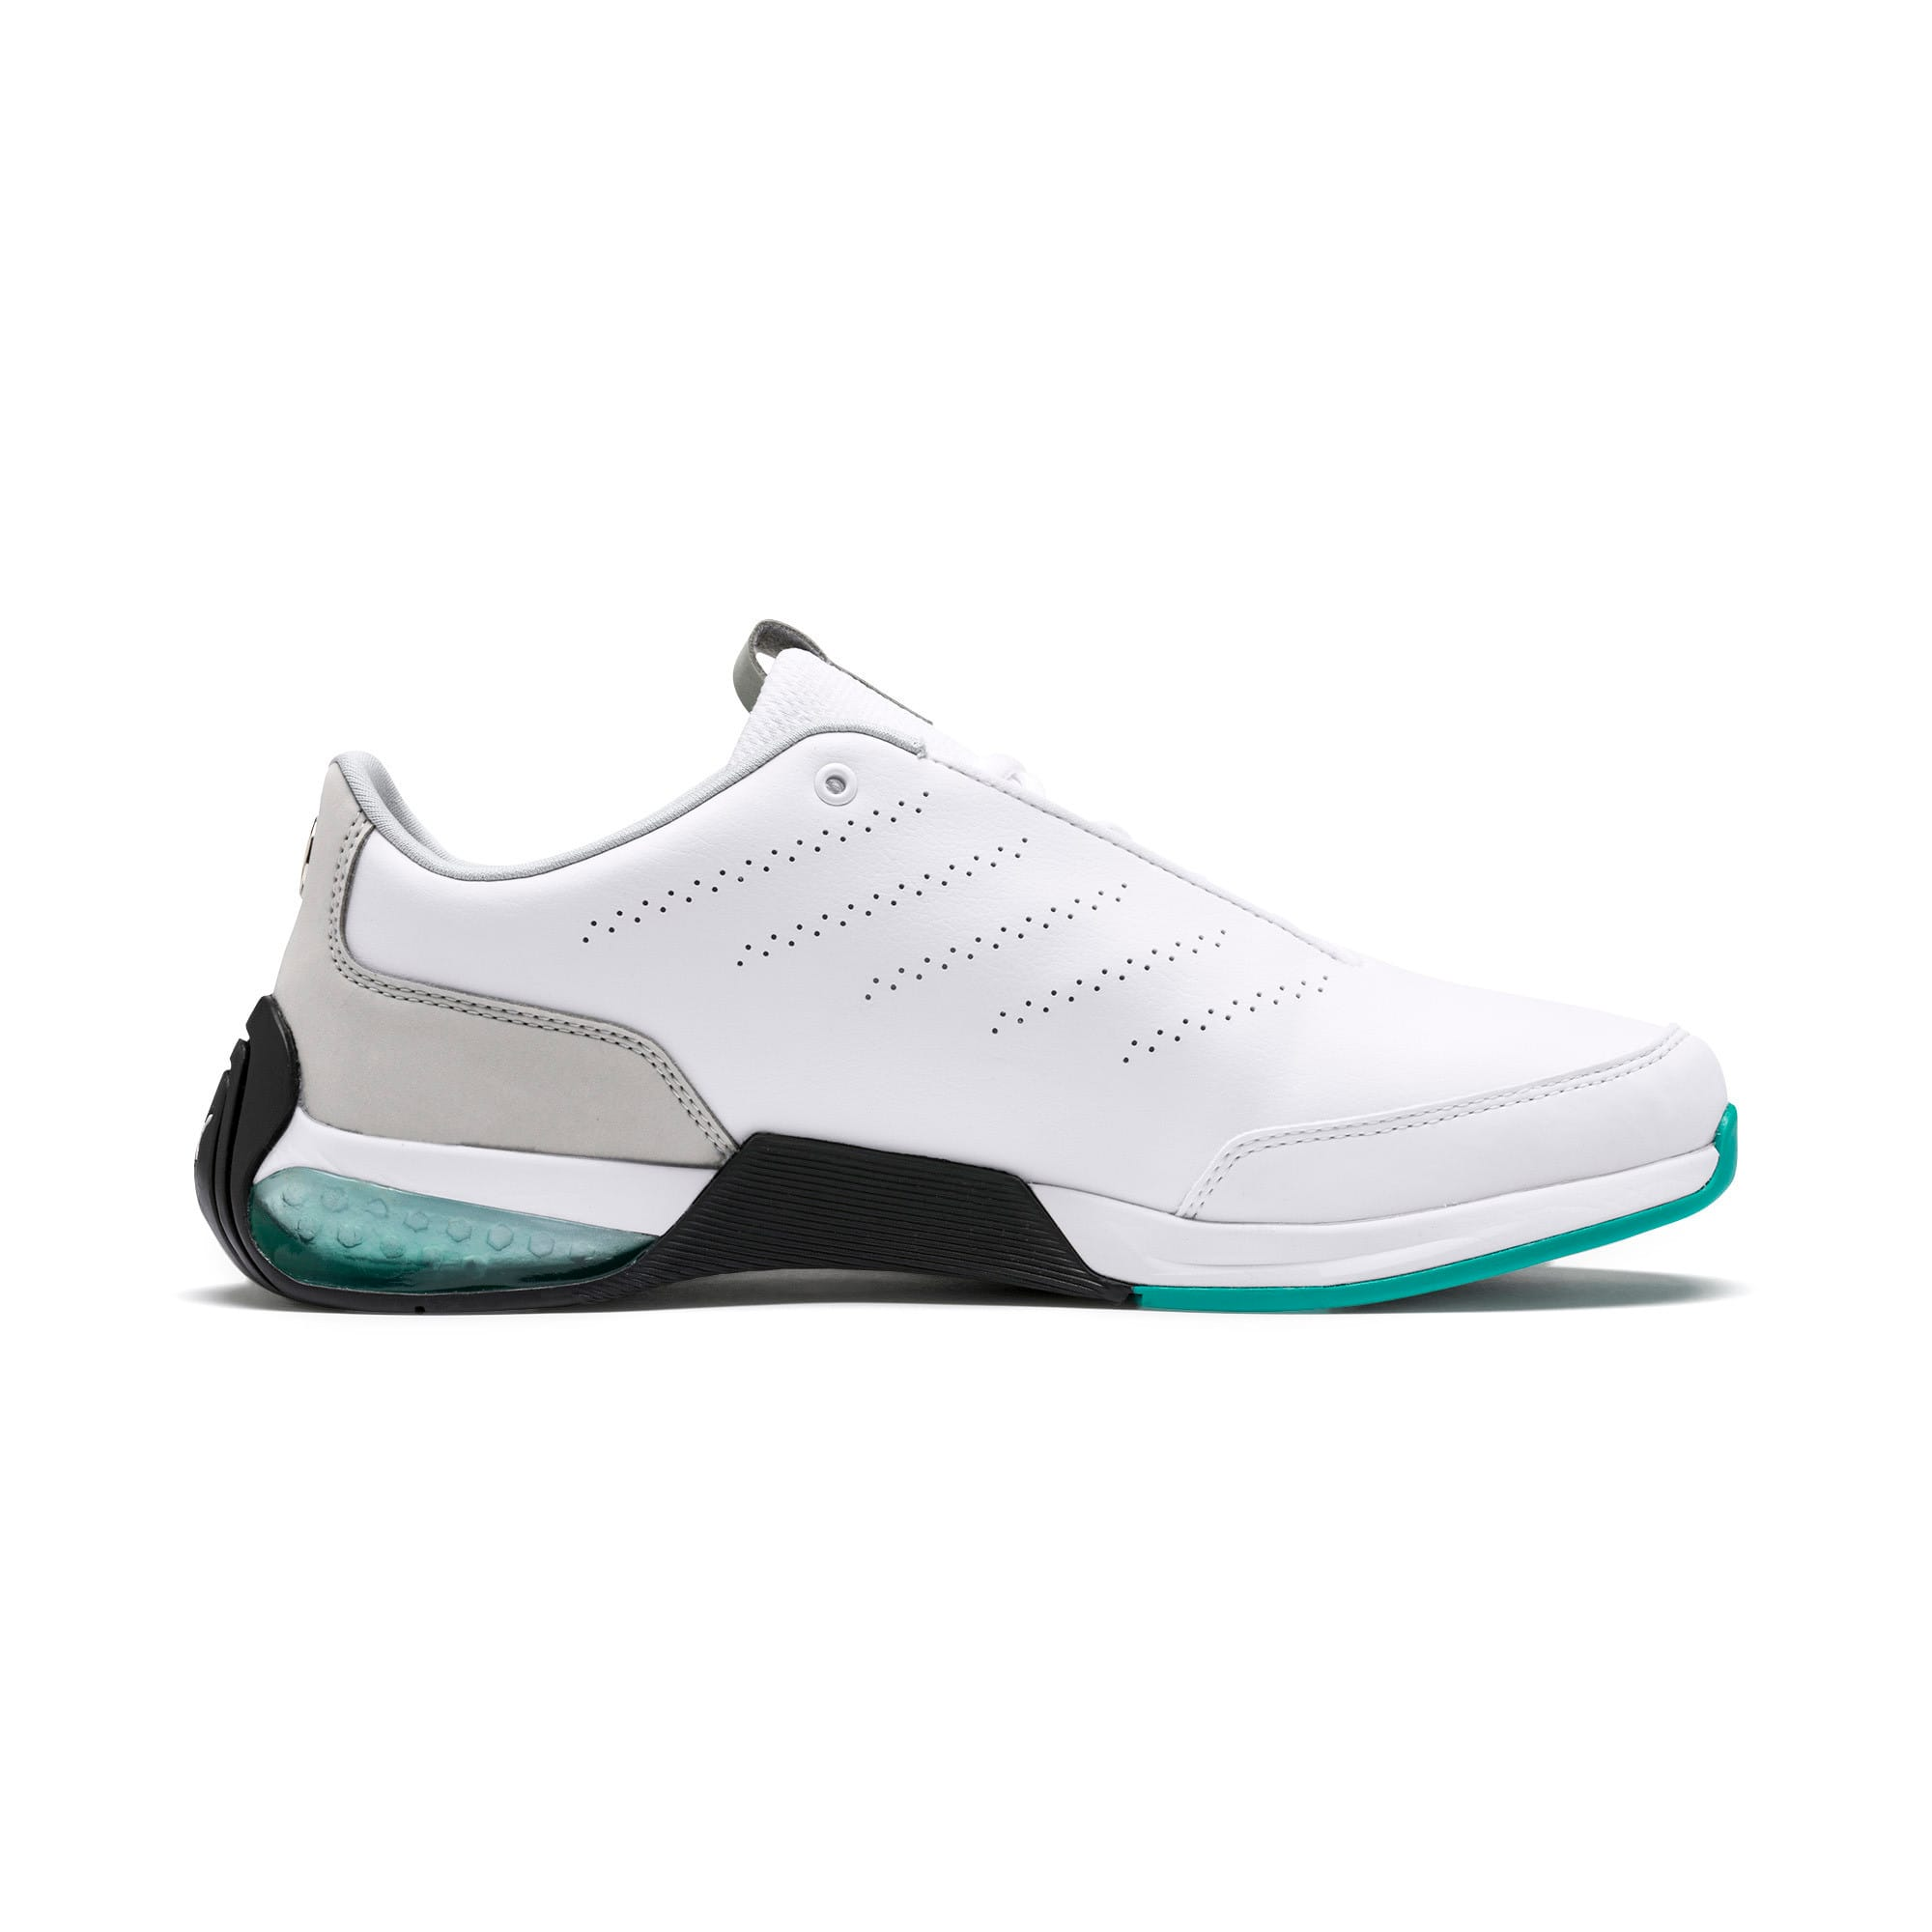 Thumbnail 7 of Mercedes AMG Petronas Motorsport Kart Cat X Trainers, Puma White-Mercedes Silver, medium-IND